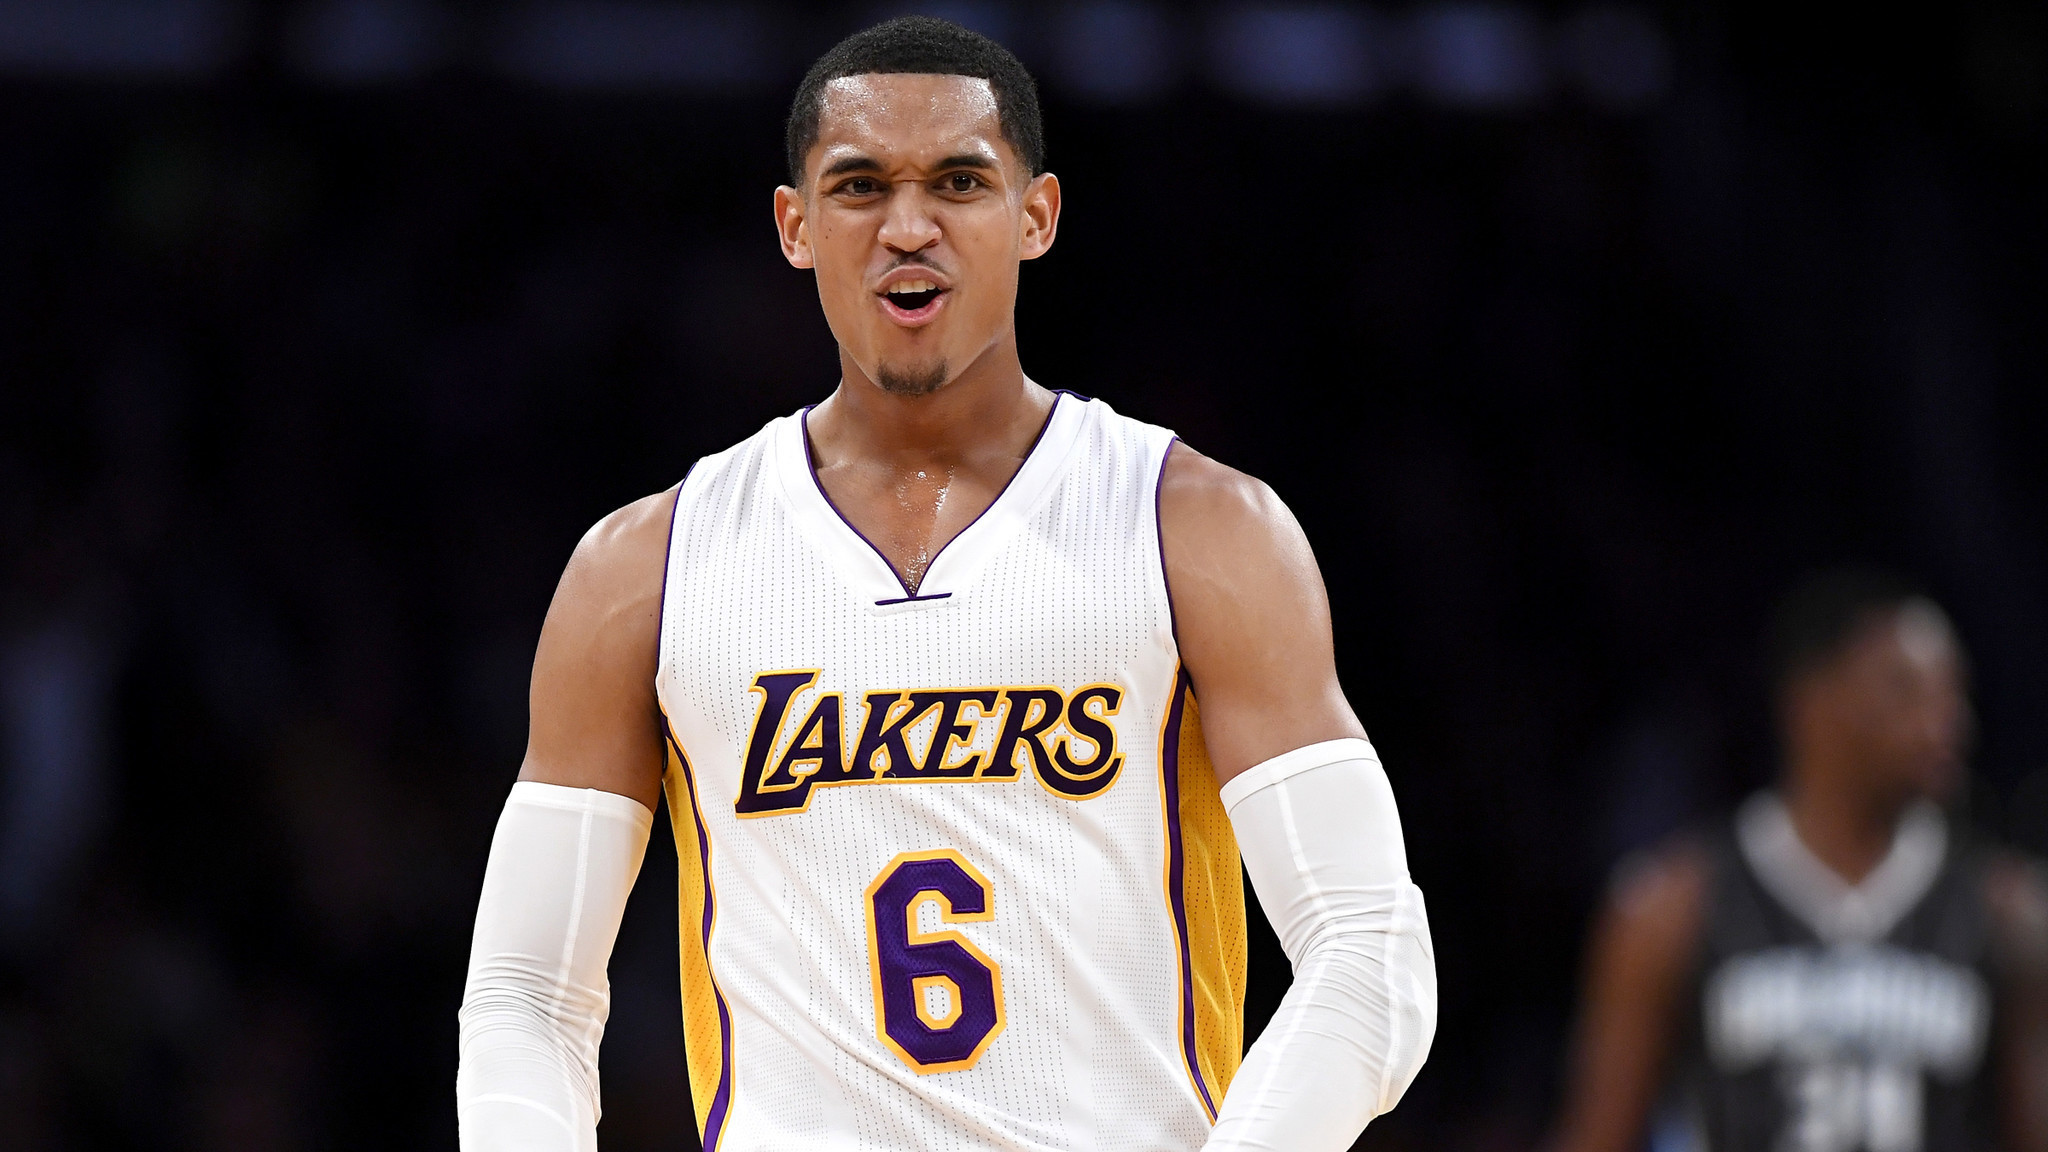 Lakers guard Jordan Clarkson fined $15,000 by NBA